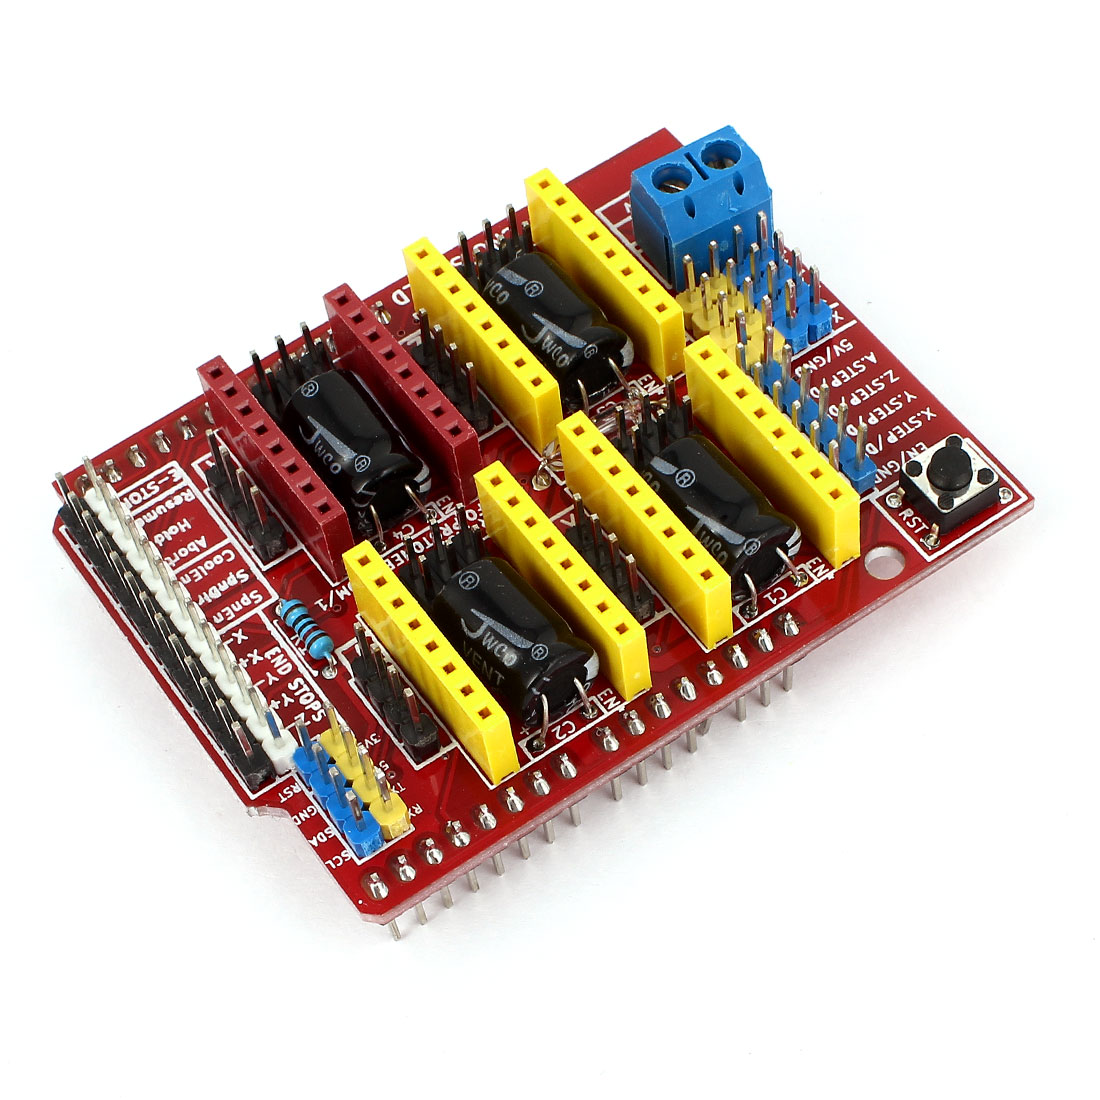 CNC Shield A4988 Driver Expansion Board for Arduino V3 Engraver 3D Printer